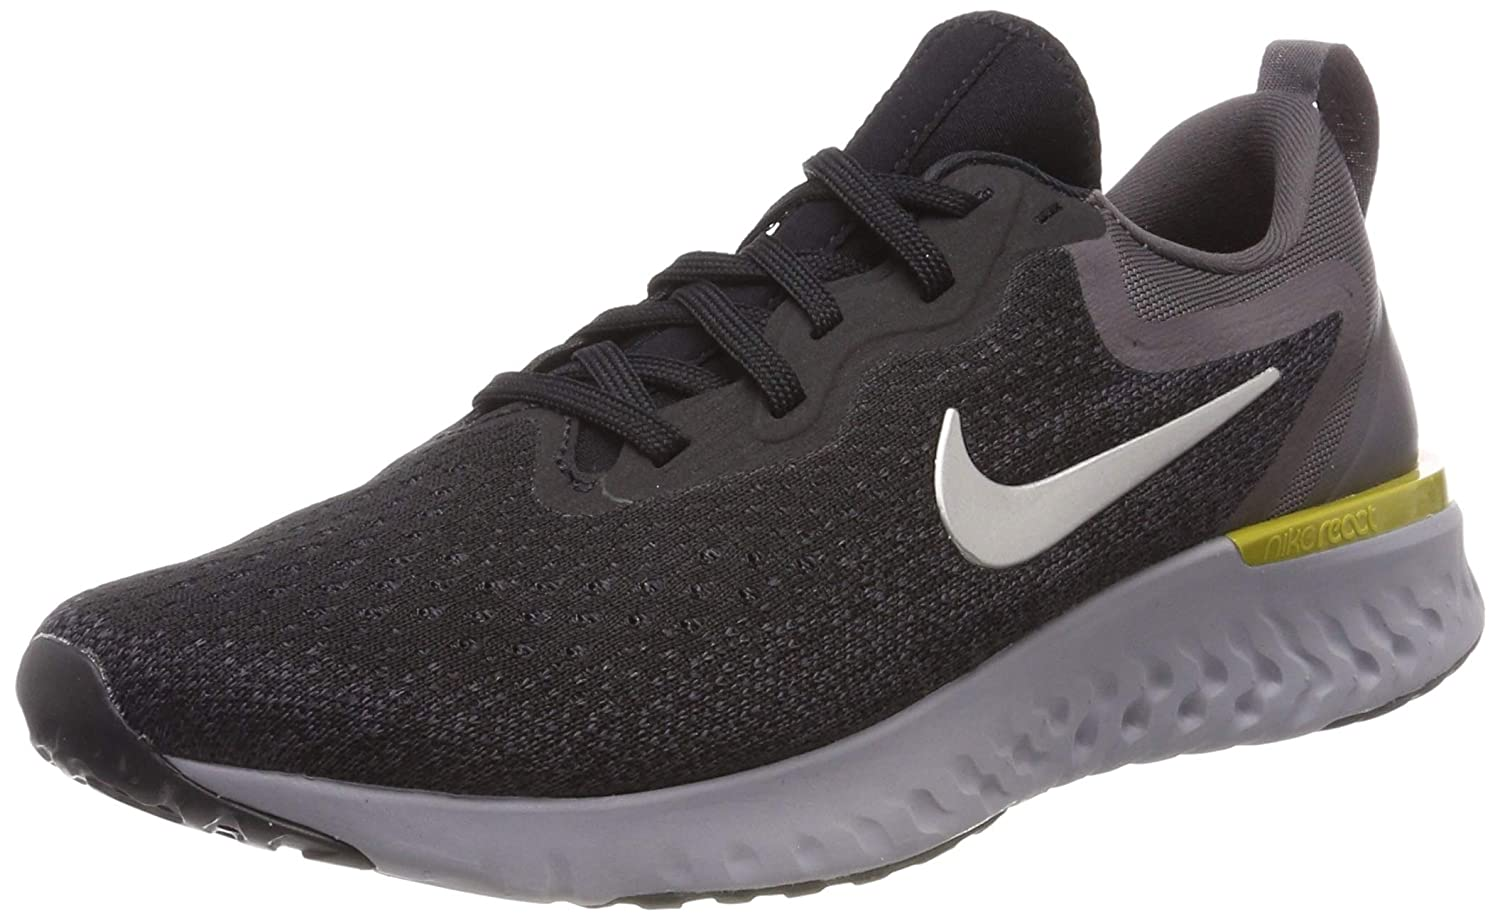 newest c7720 5c277 Amazon.com   Nike Men s Odyssey React Running Shoe   Fashion Sneakers